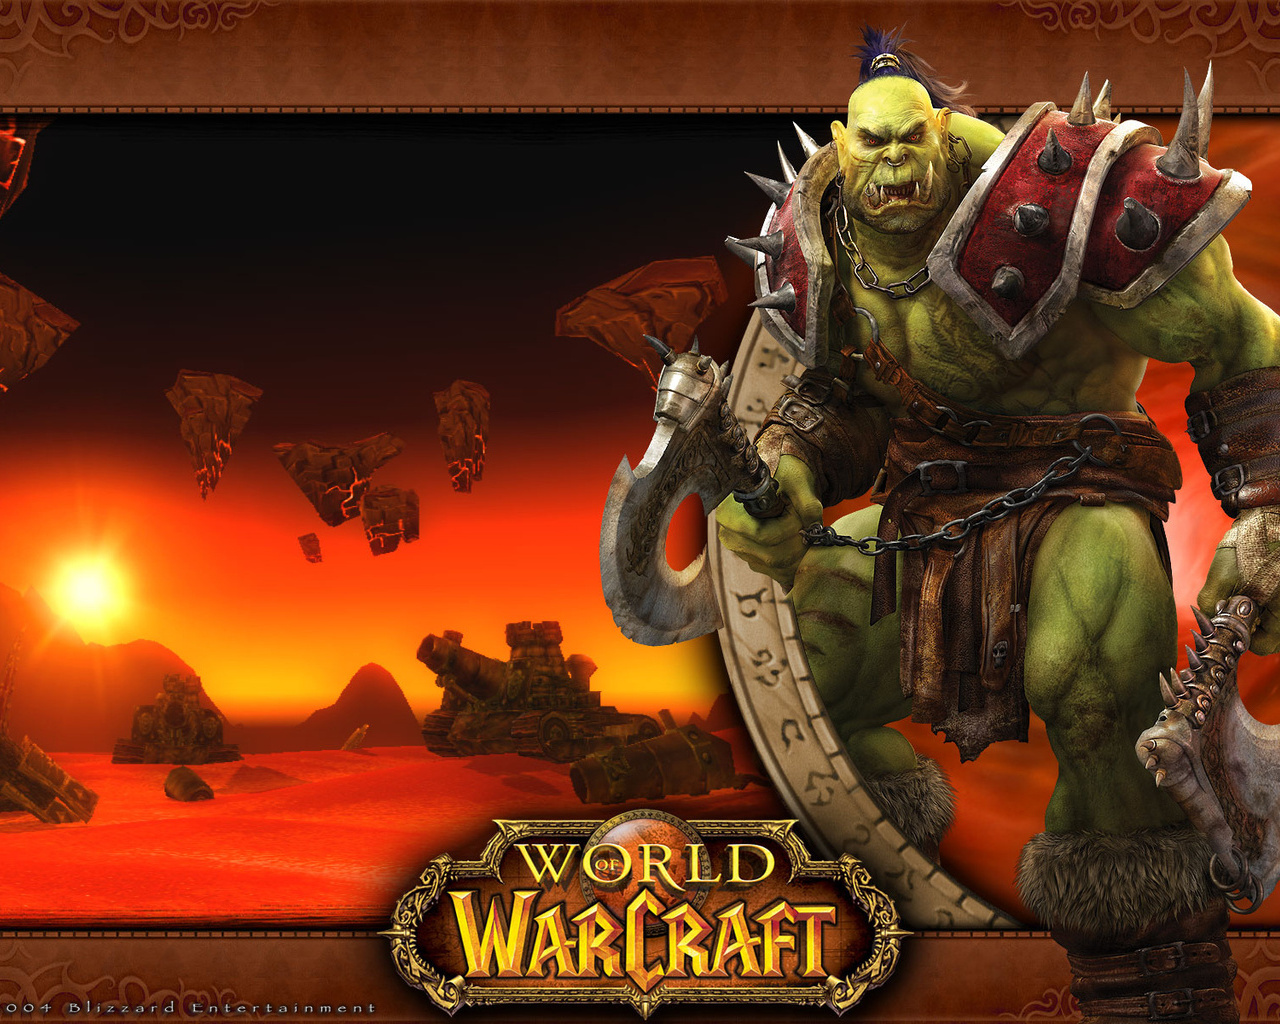 World of Warcraft orcs exploited pic